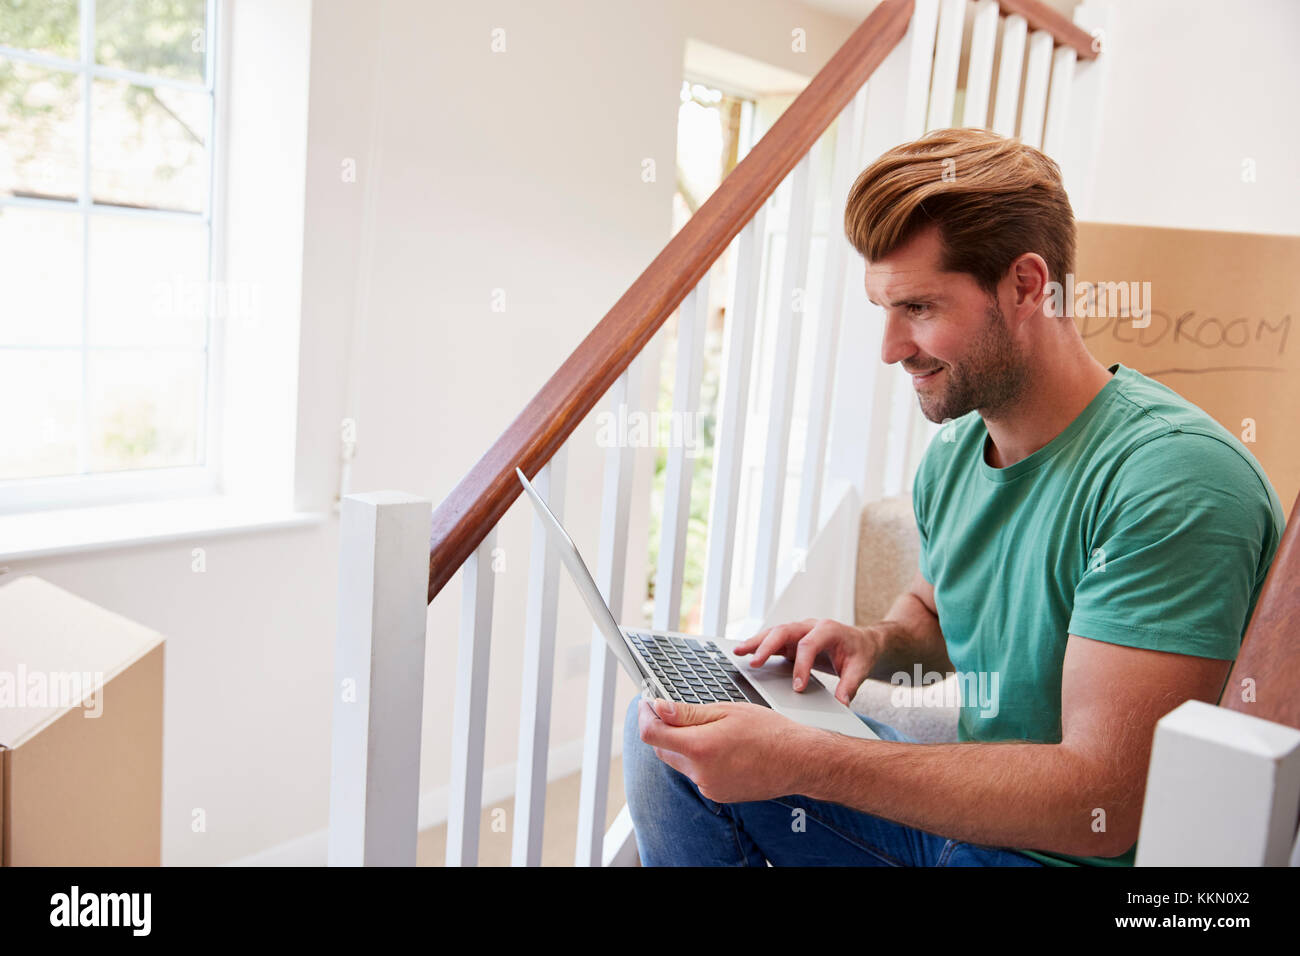 Man Moving Into New Home Looking At Personal Finances On Laptop - Stock Image